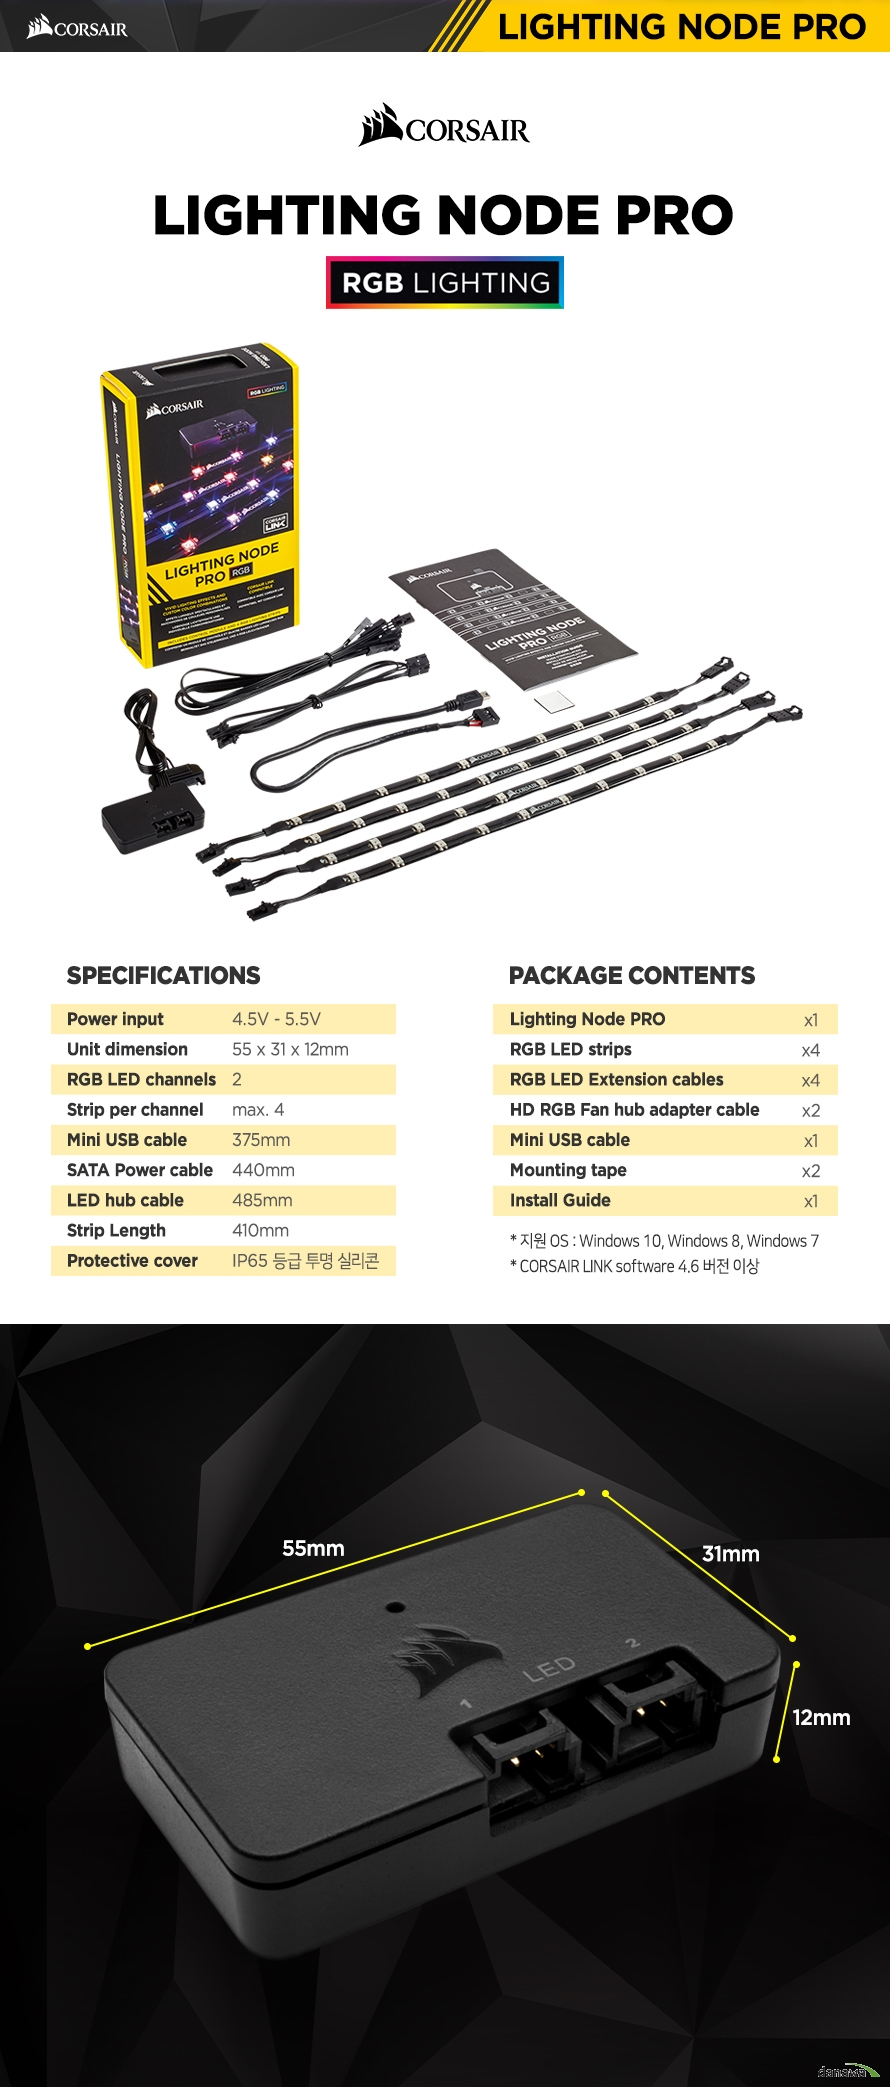 SPECIFICATIONS Power input 4.5V - 5.5VUnit dimension 55 x 31 x 12mmRGB LED channels 2Strip per channel max. 4Mini USB cable 375mmSATA Power cable 440mmLED hub cable 485mmStrip Length 410mmProtective cover IP65 등급 투명 실리콘 PACKAGE Contents Lighting Node PRO x1RGB LED strips x4RGB LED Extension cables x4HD RGB Fan hub adapter cable x2Mini USB cable x1Mounting tape x2Install Guide x1* 지원 OS : Windows 10, Windows 8, Windows 7* CORSAIR LINK software 4.6 버전 이상